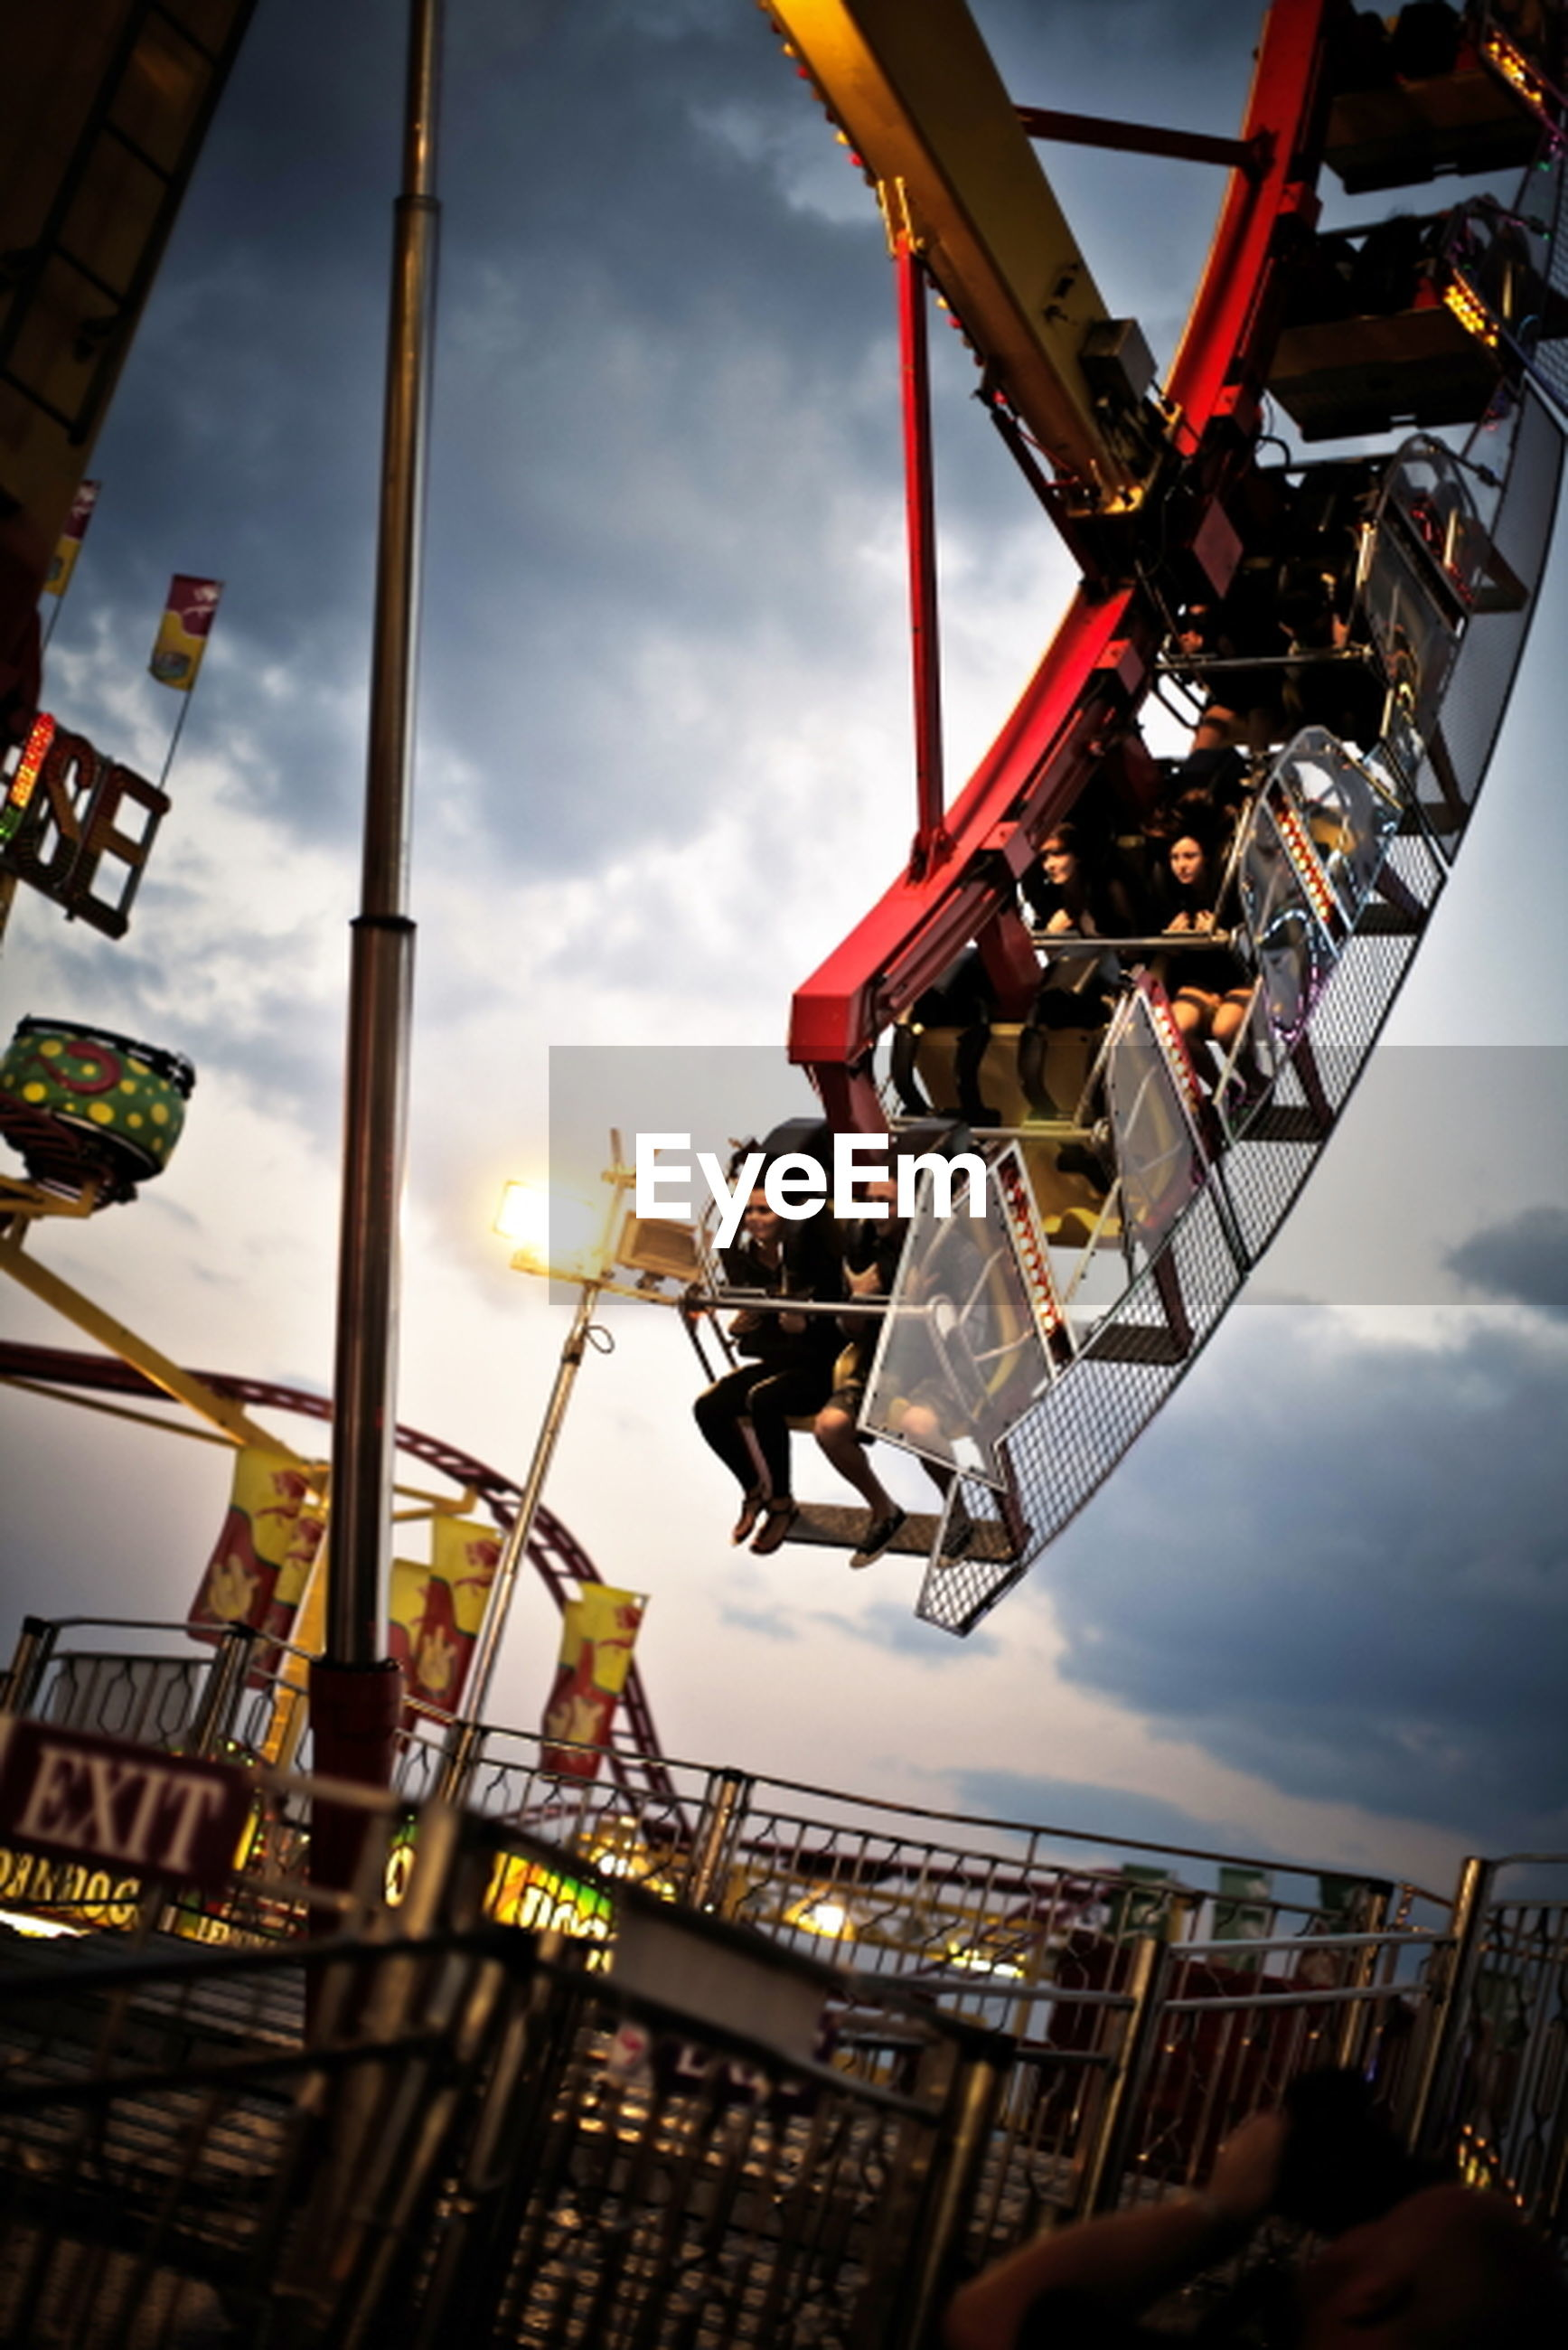 sky, low angle view, built structure, architecture, cloud - sky, building exterior, city, cloudy, metal, day, cloud, outdoors, hanging, transportation, large group of objects, incidental people, construction site, no people, sunlight, amusement park